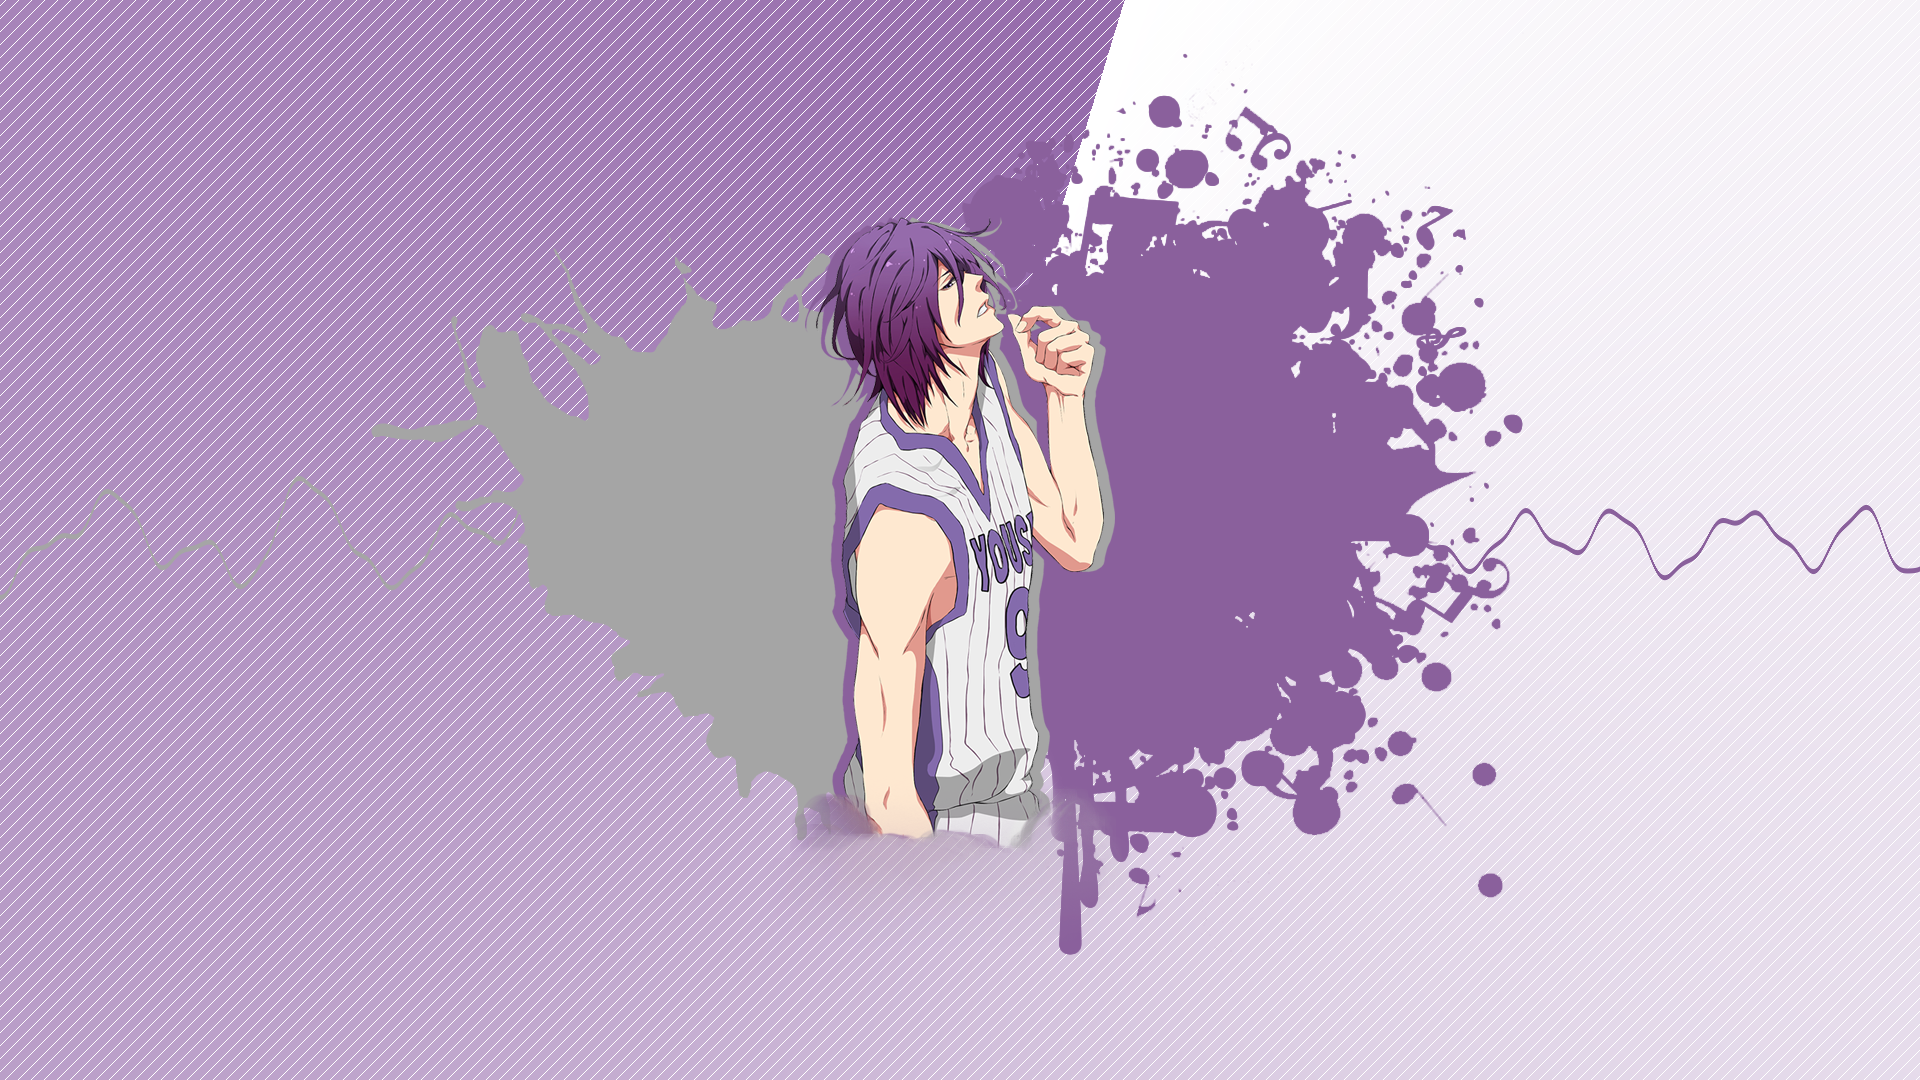 Murasakibara Wallpaper Kuroko No Basket Iphone X Anime Wallpaper Hd 1363844 Hd Wallpaper Backgrounds Download